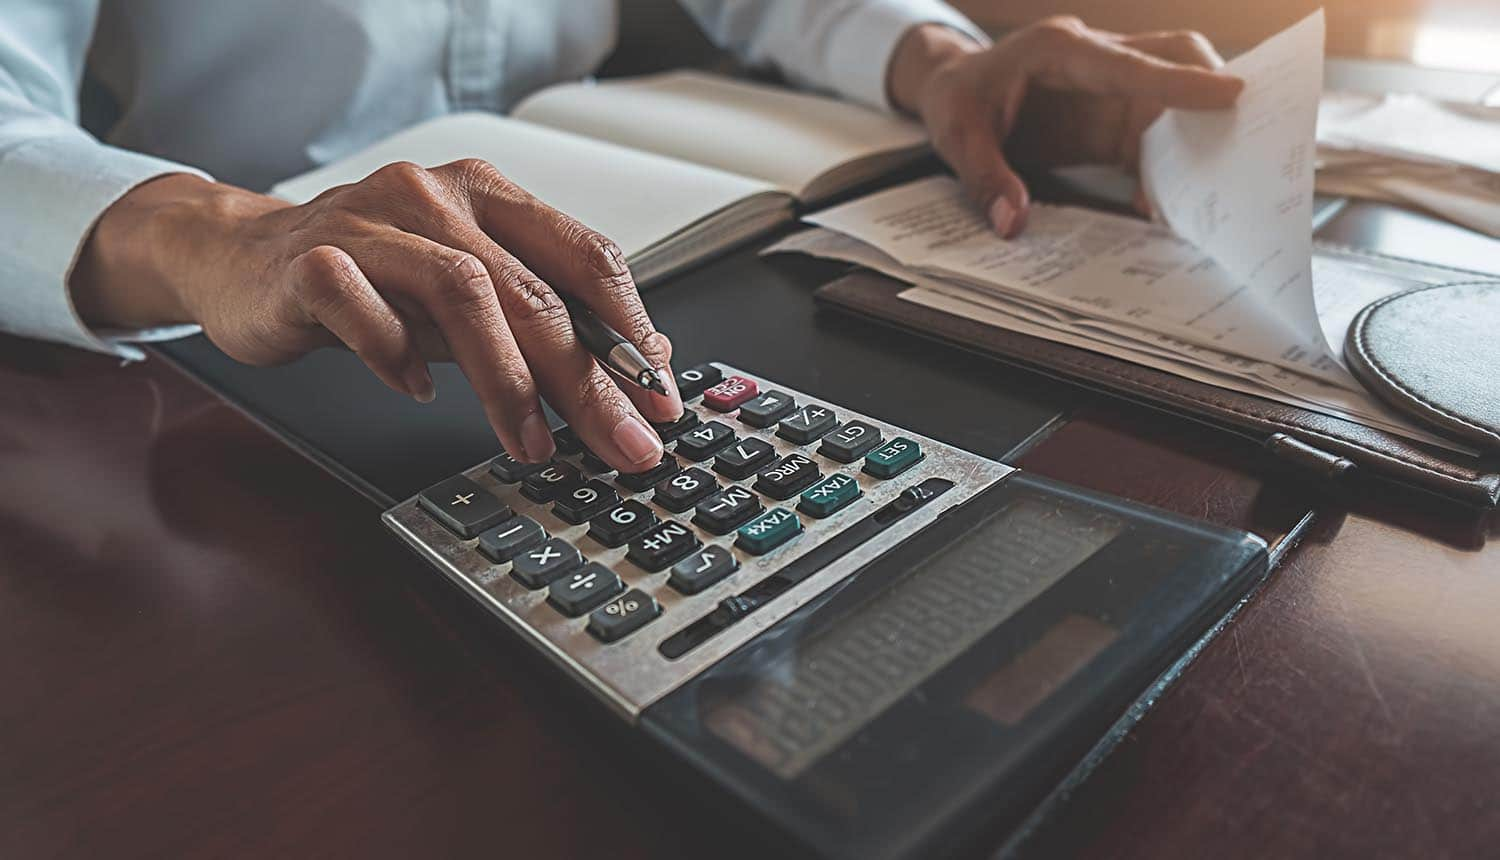 Woman using calculator to calculate bills showing how the cyber insurance payouts are encouraging more ransomware attacks